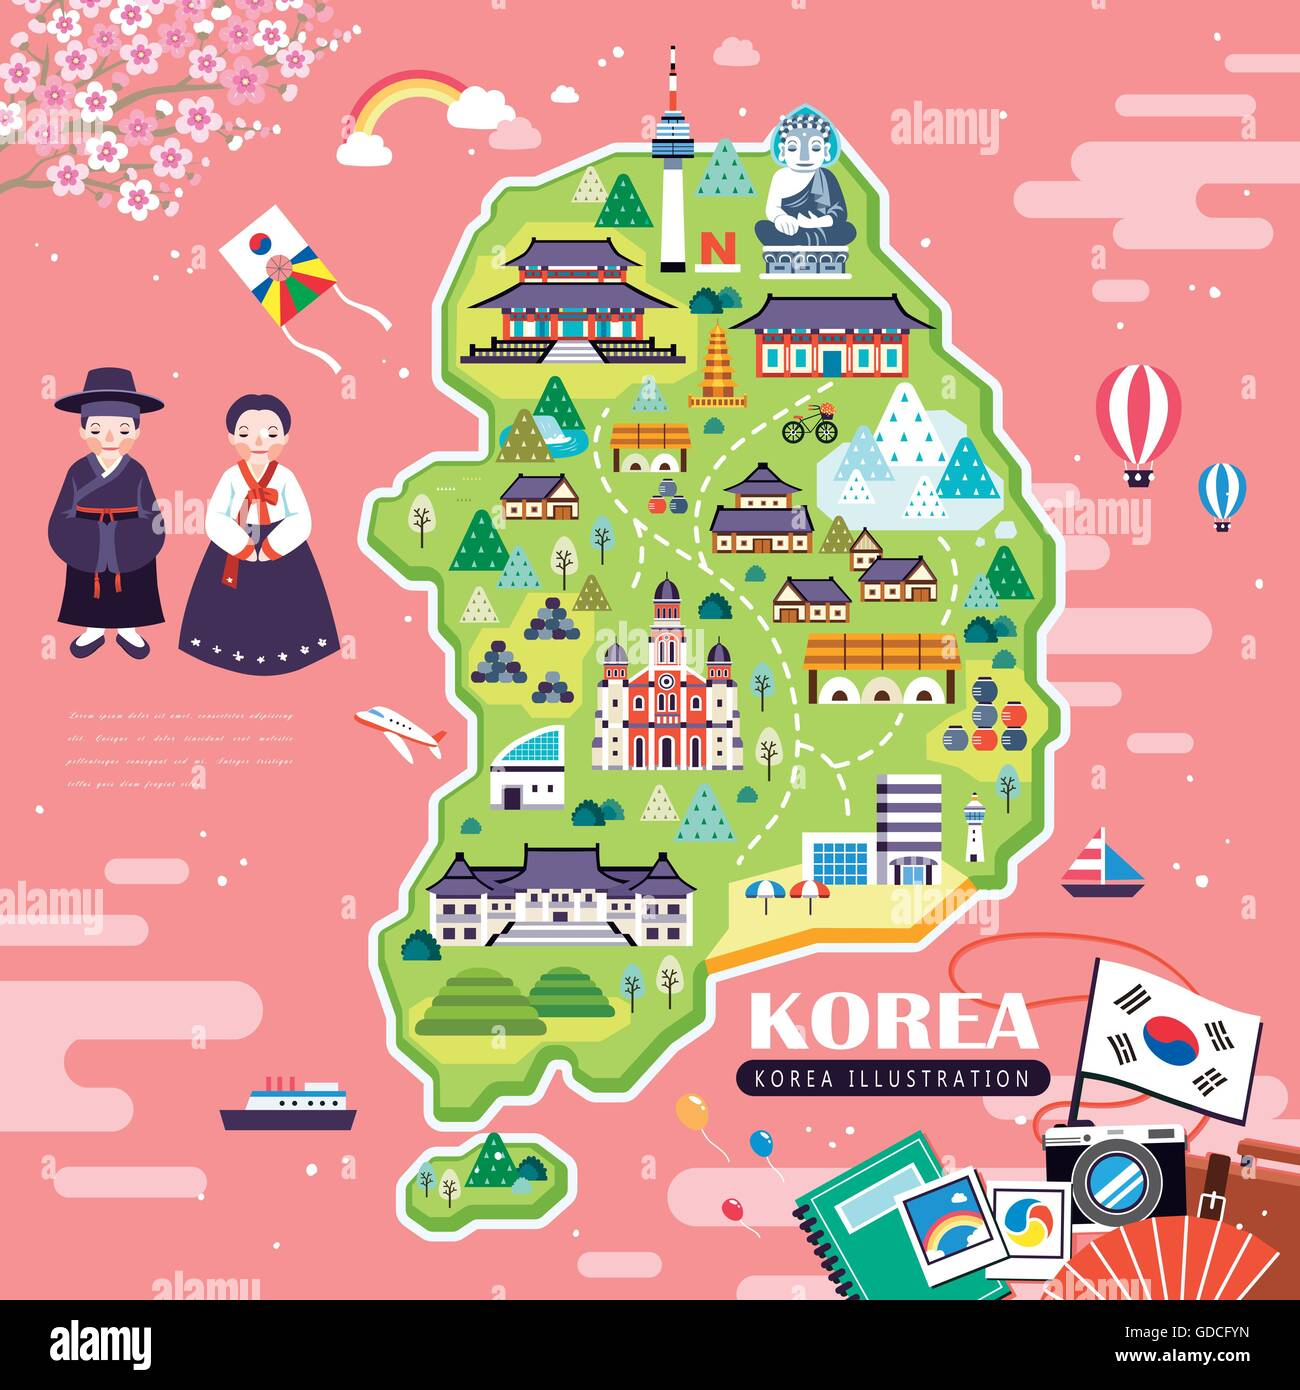 Lovely korea travel map design with attractions over pink ocean lovely korea travel map design with attractions over pink ocean gumiabroncs Image collections